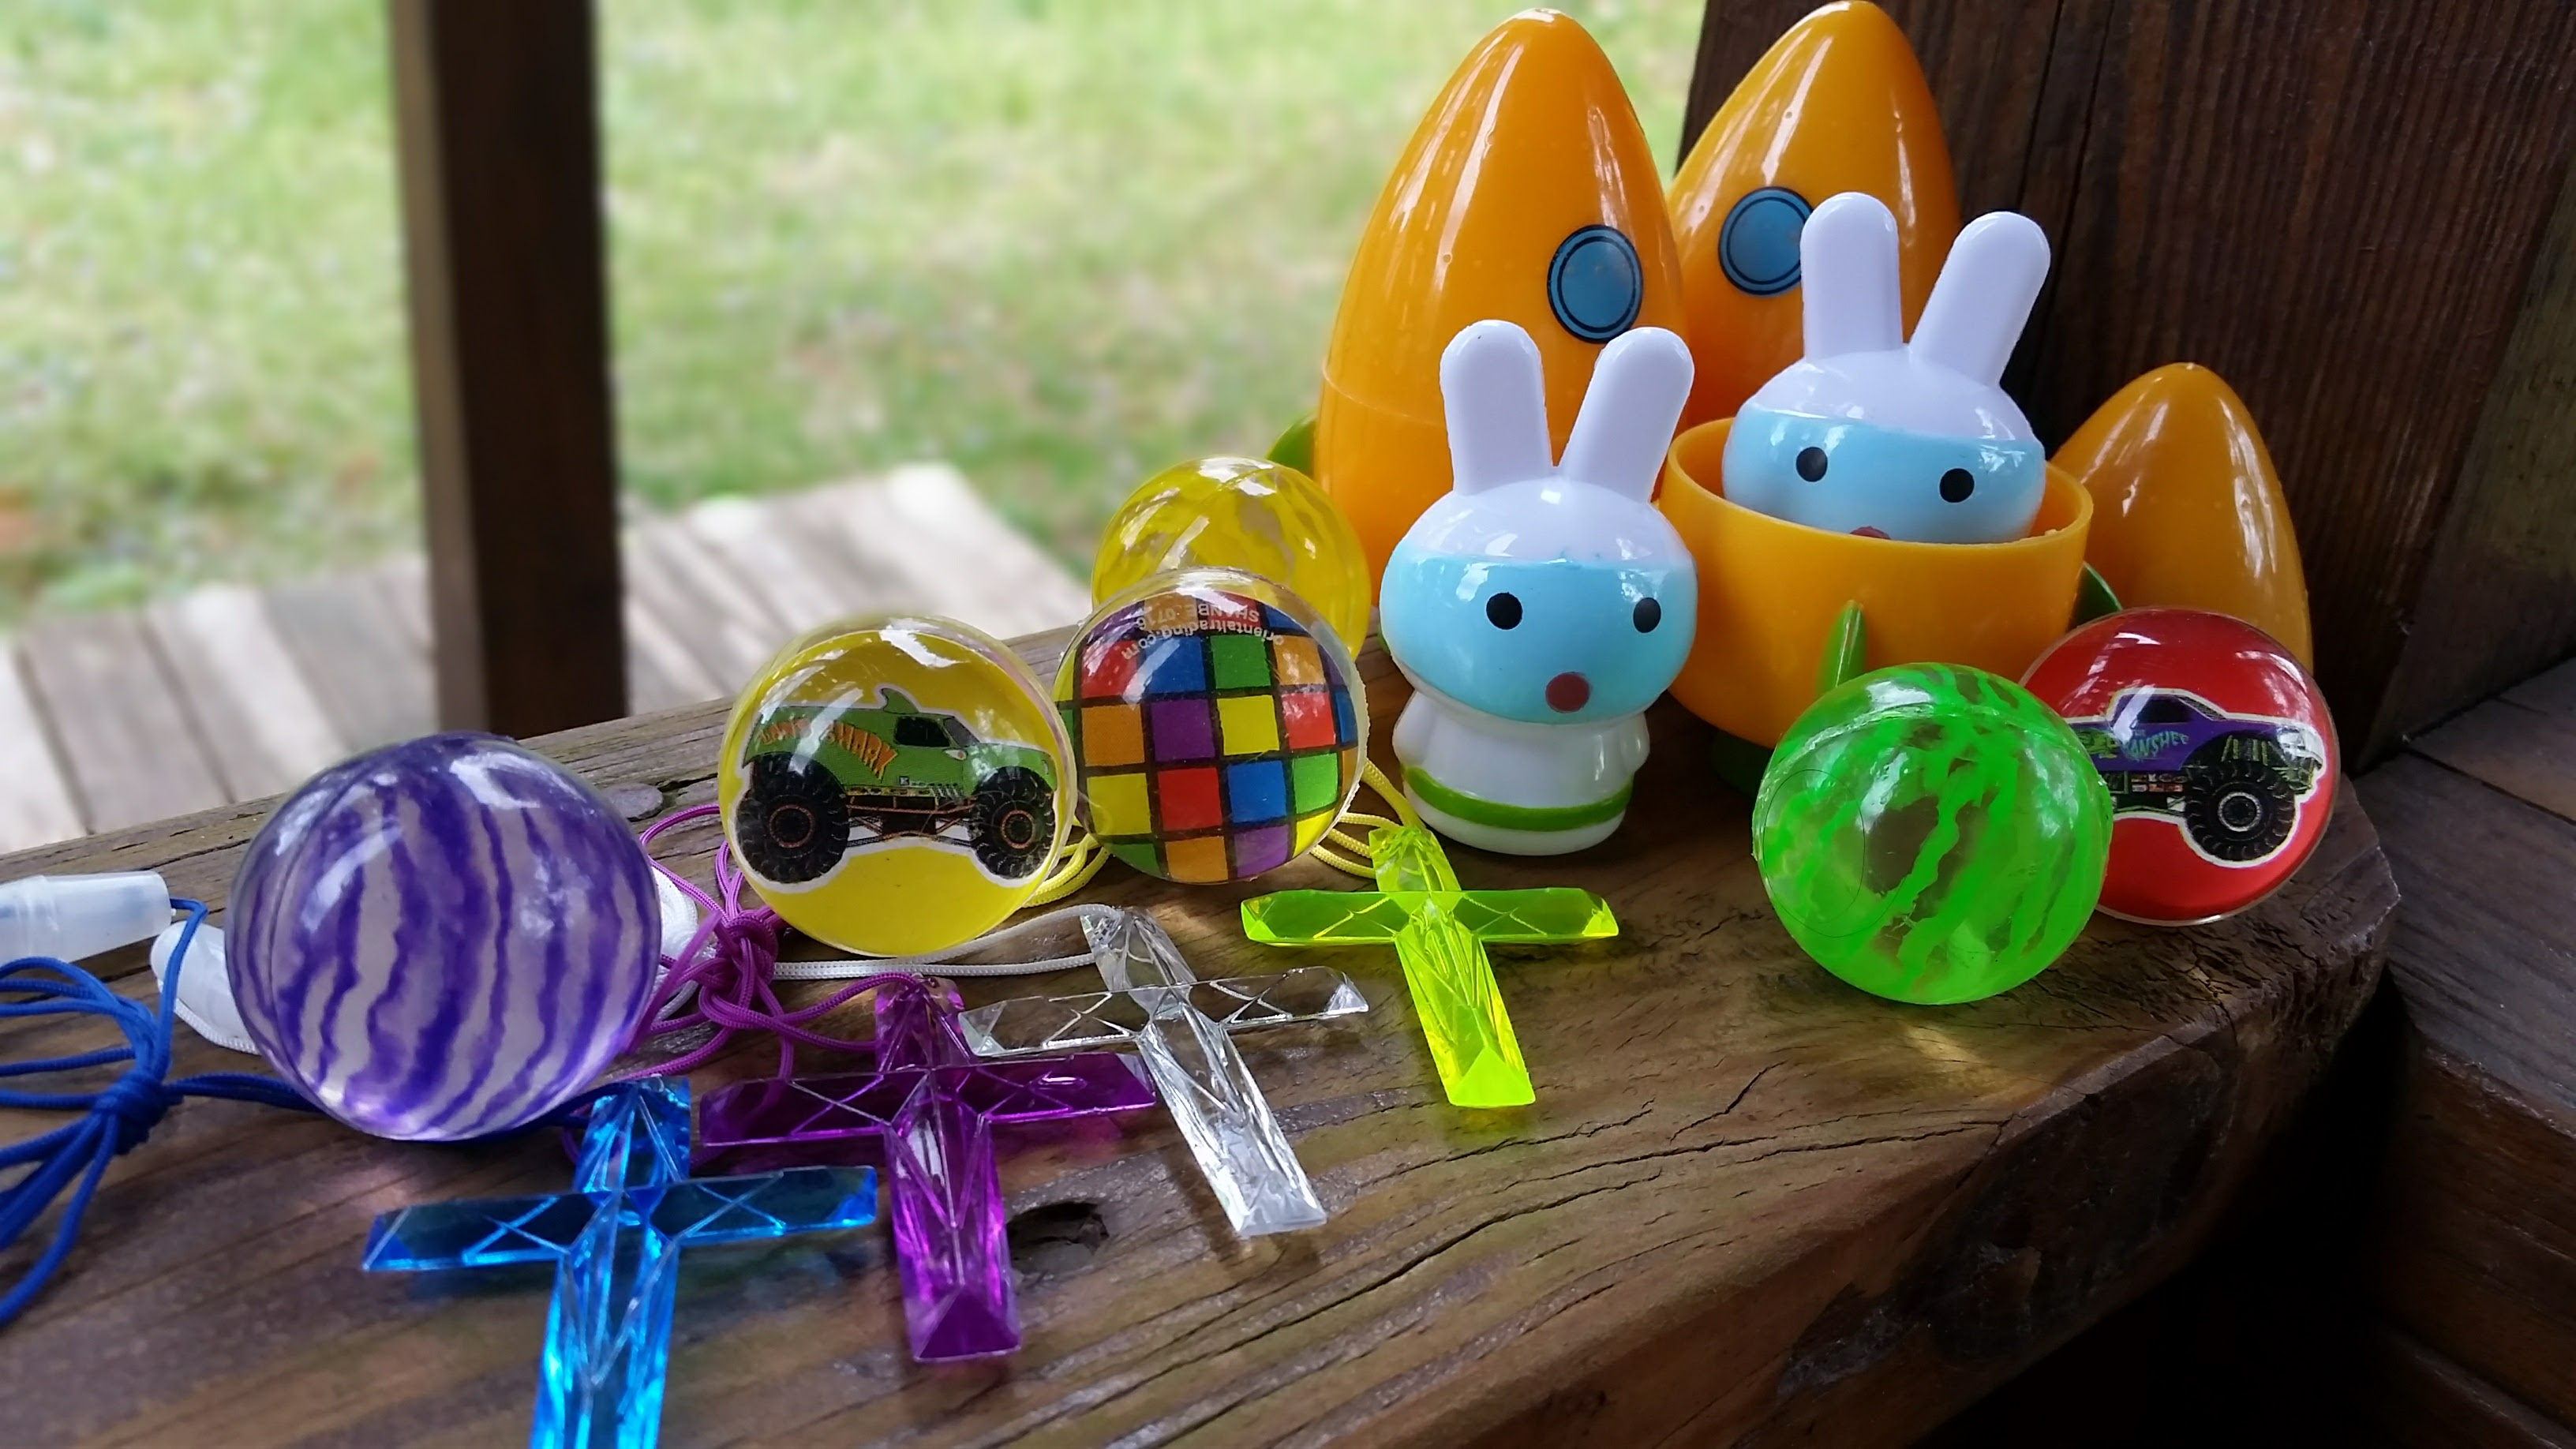 Plastic bunny in carrot spaceship egg, plastic cross necklaces, and bouncy balls for Easter egg hunt, products from Oriental Trading Company